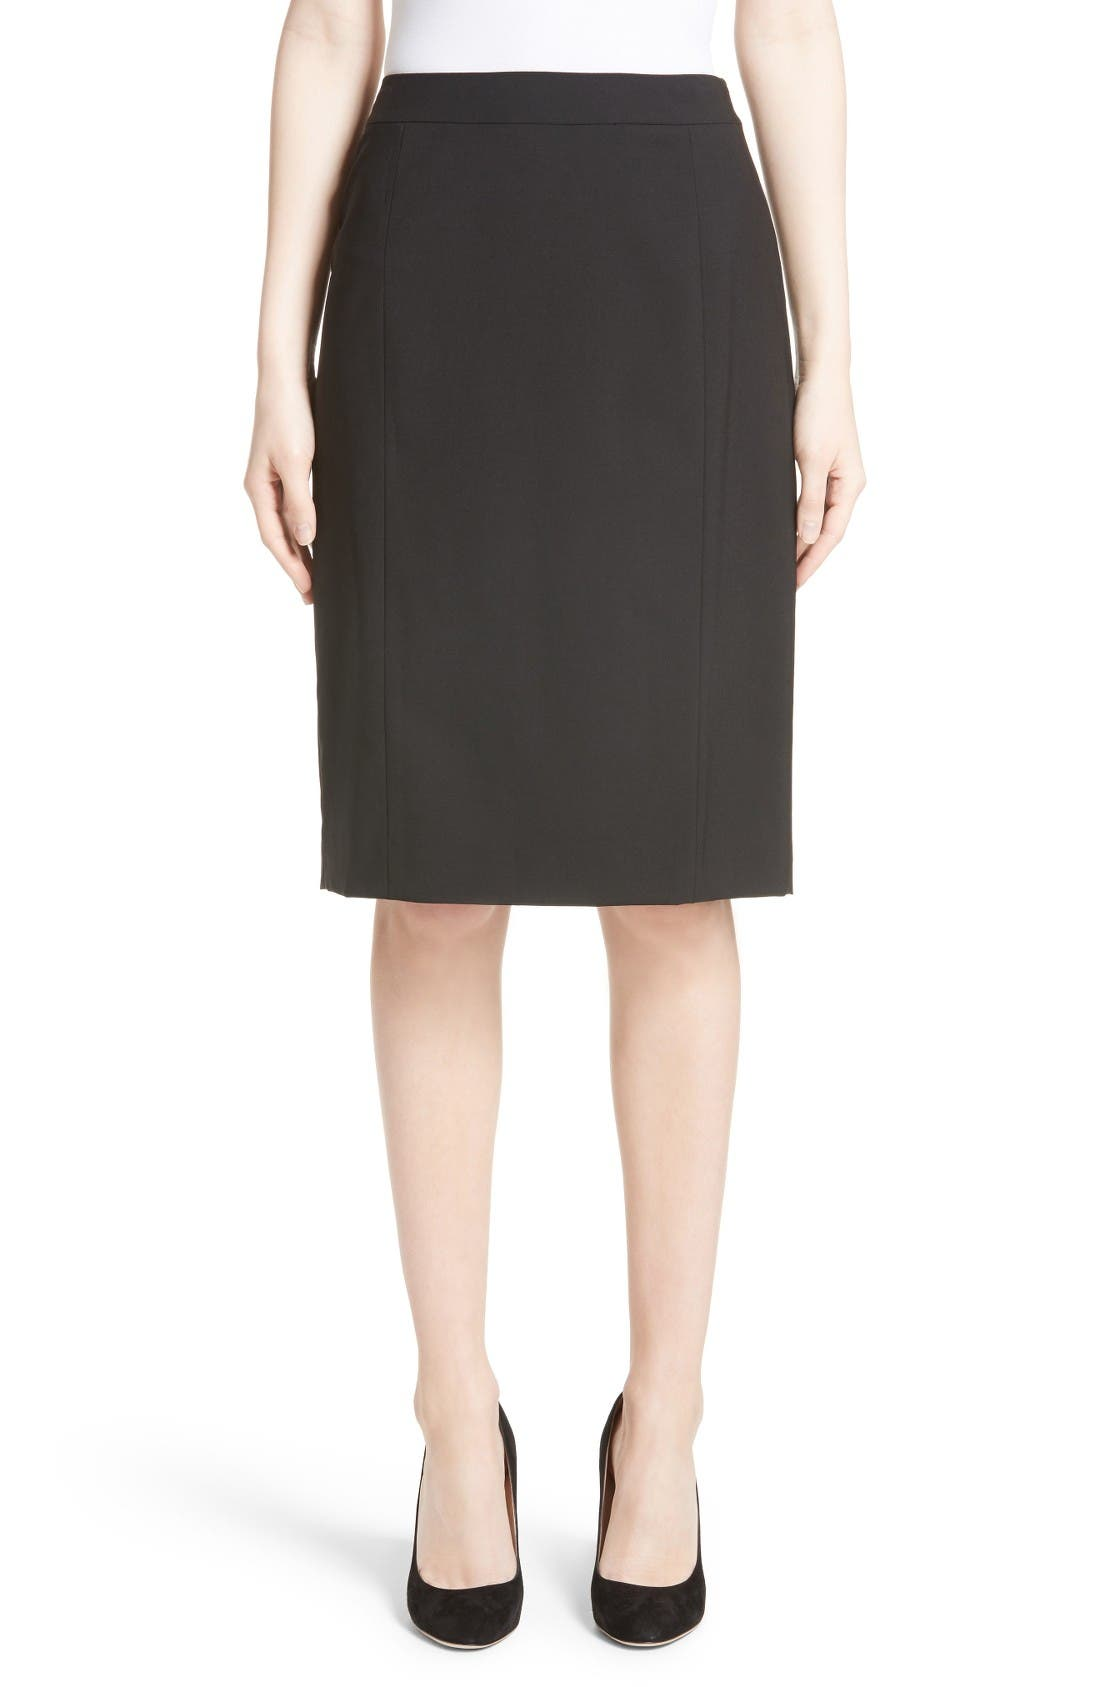 Alternate Image 1 Selected - Lafayette 148 New York Stretch Wool Pencil Skirt